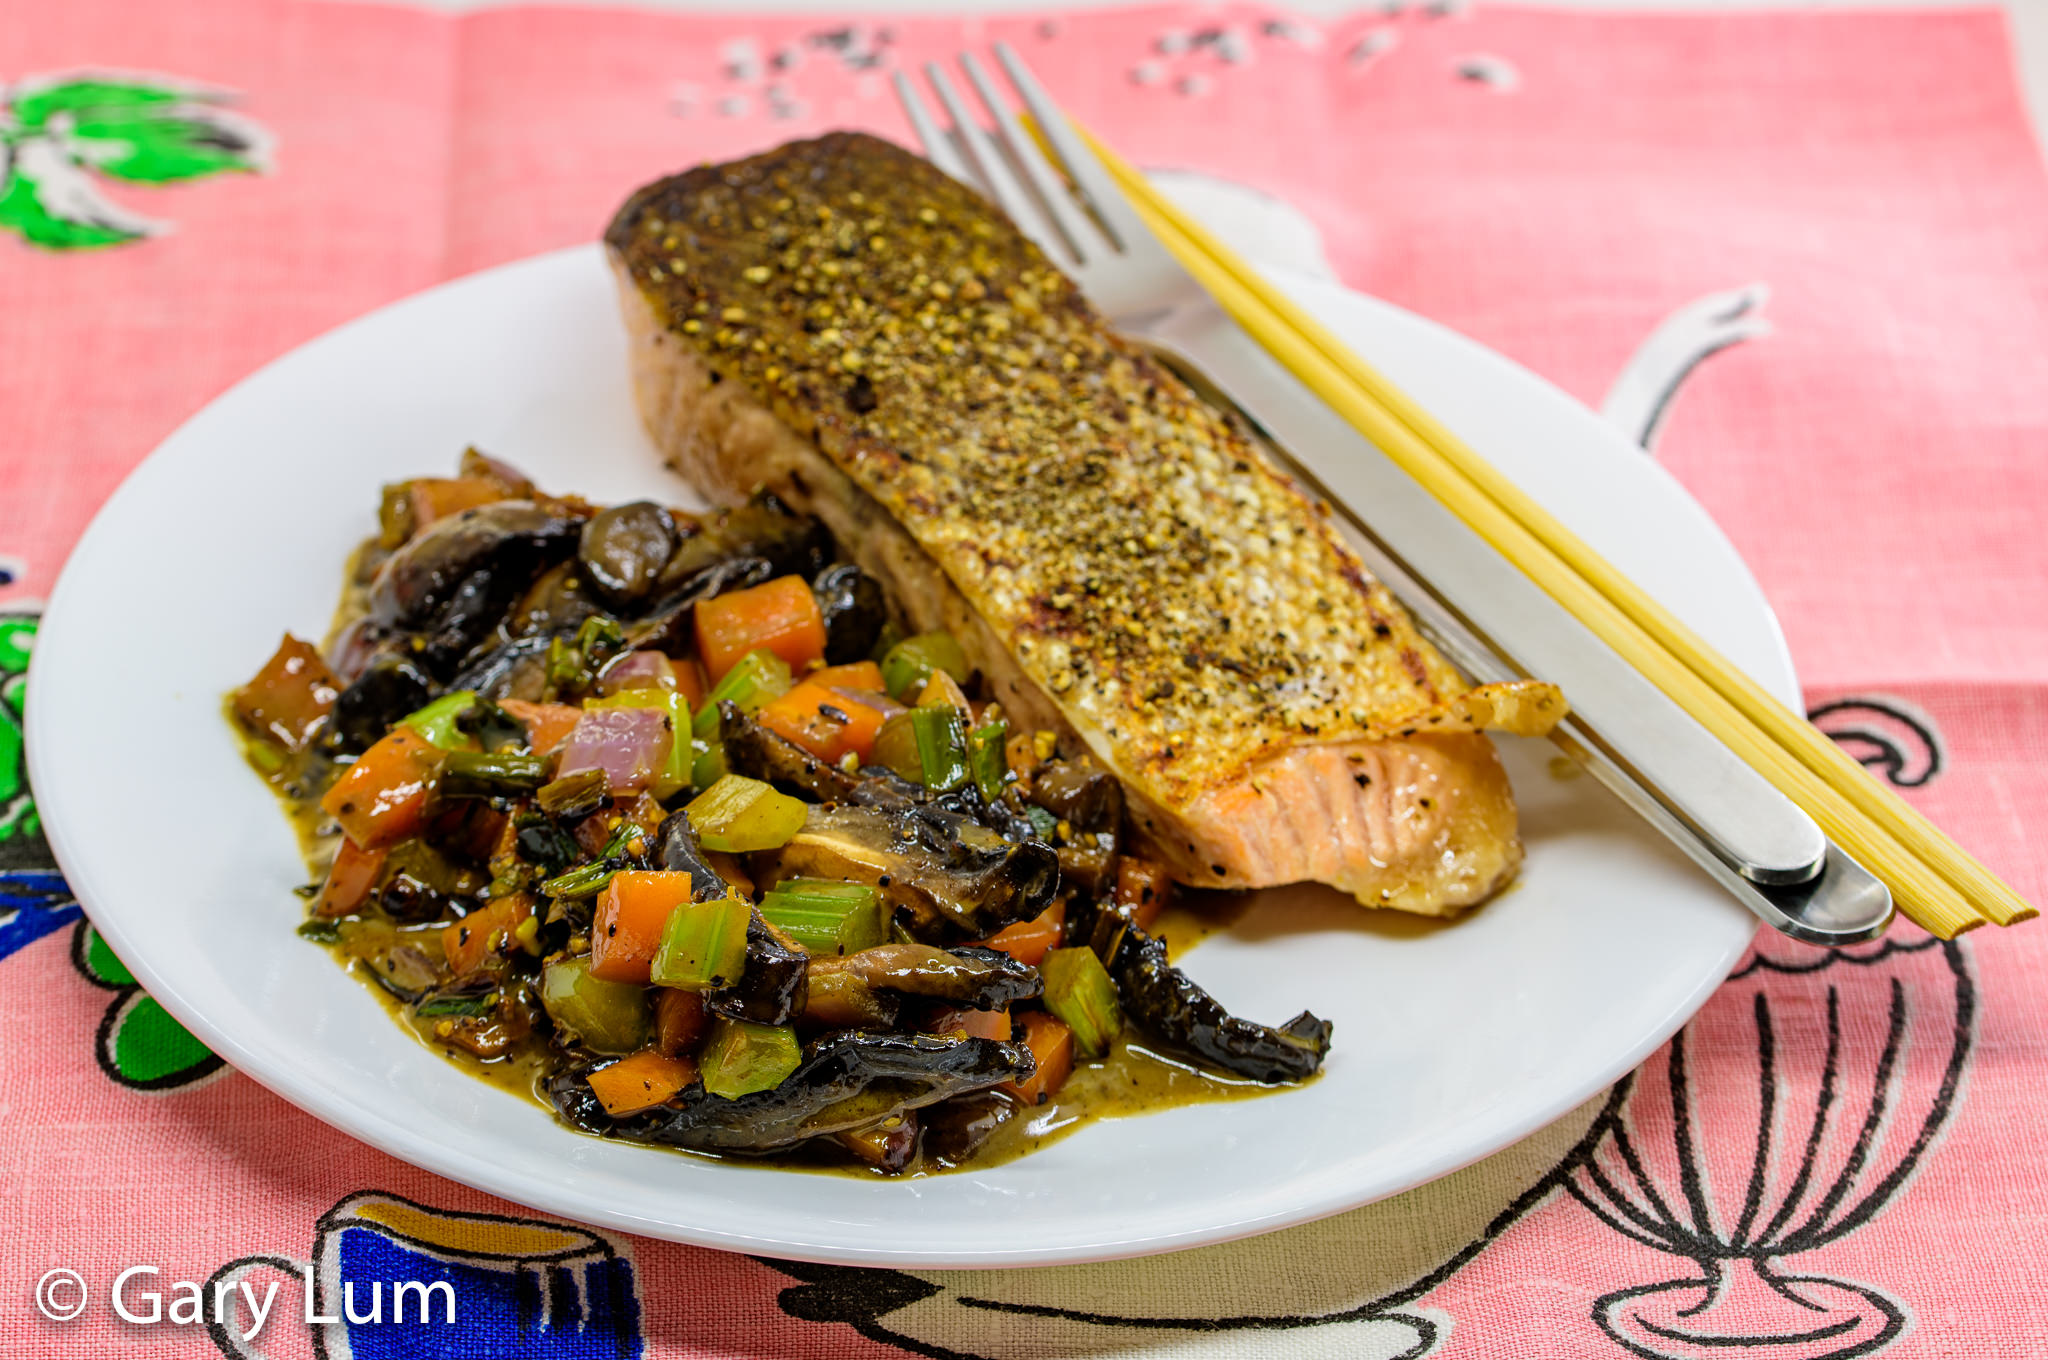 Pan-fried salmon with creamy mushrooms and vegetables. Gary Lum.